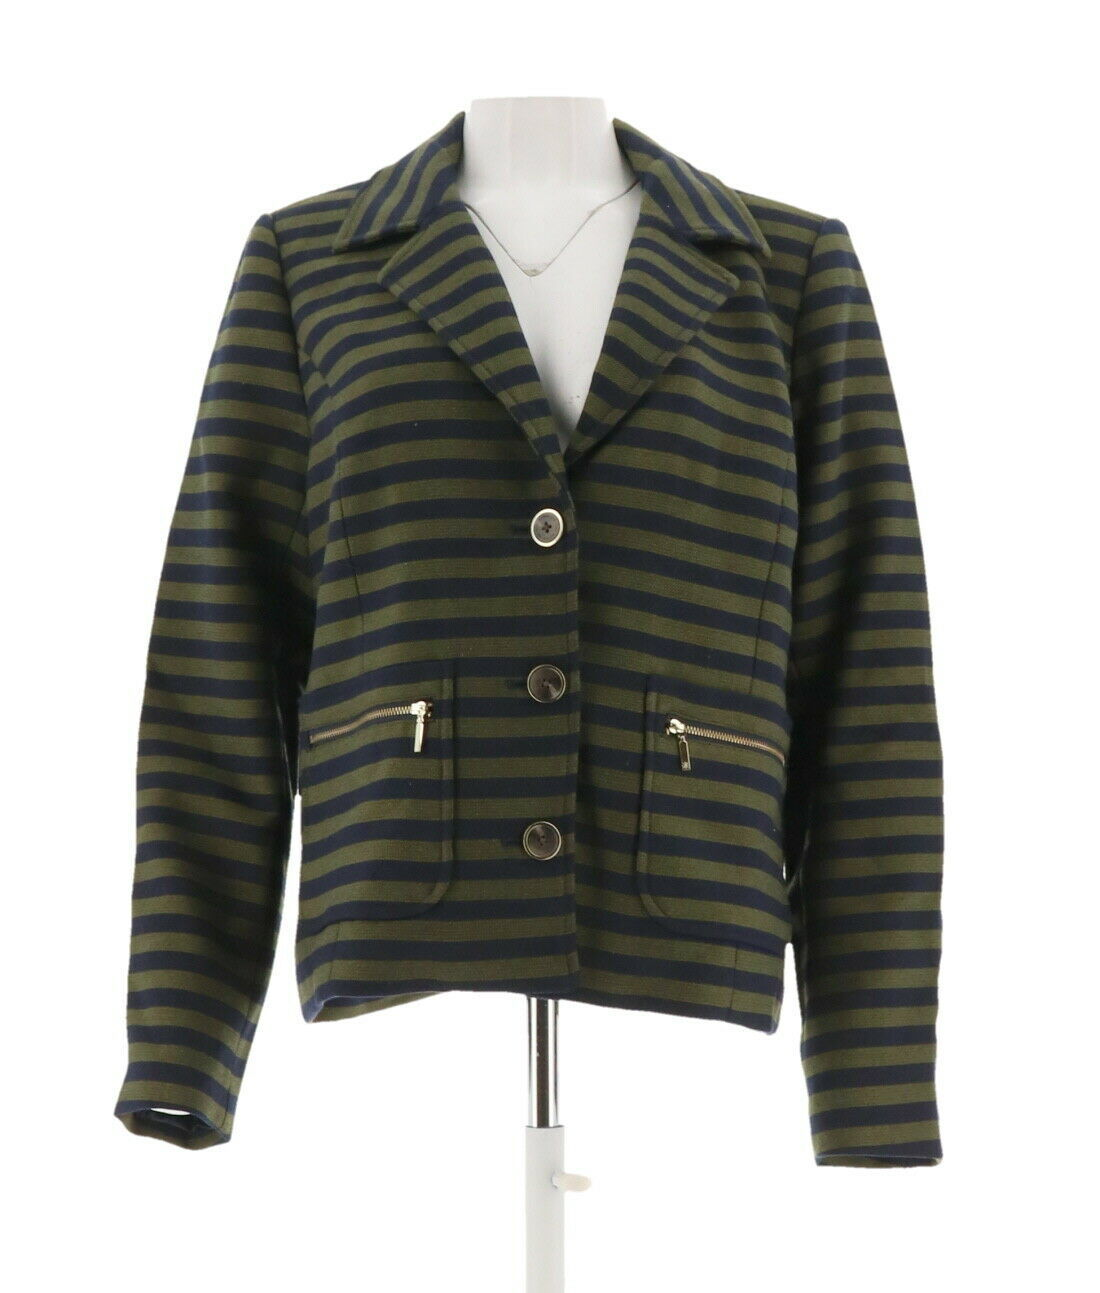 Primary image for Isaac Mizrahi Striped Jacket Zipper GreenOlive Navy 18W NEW A266828